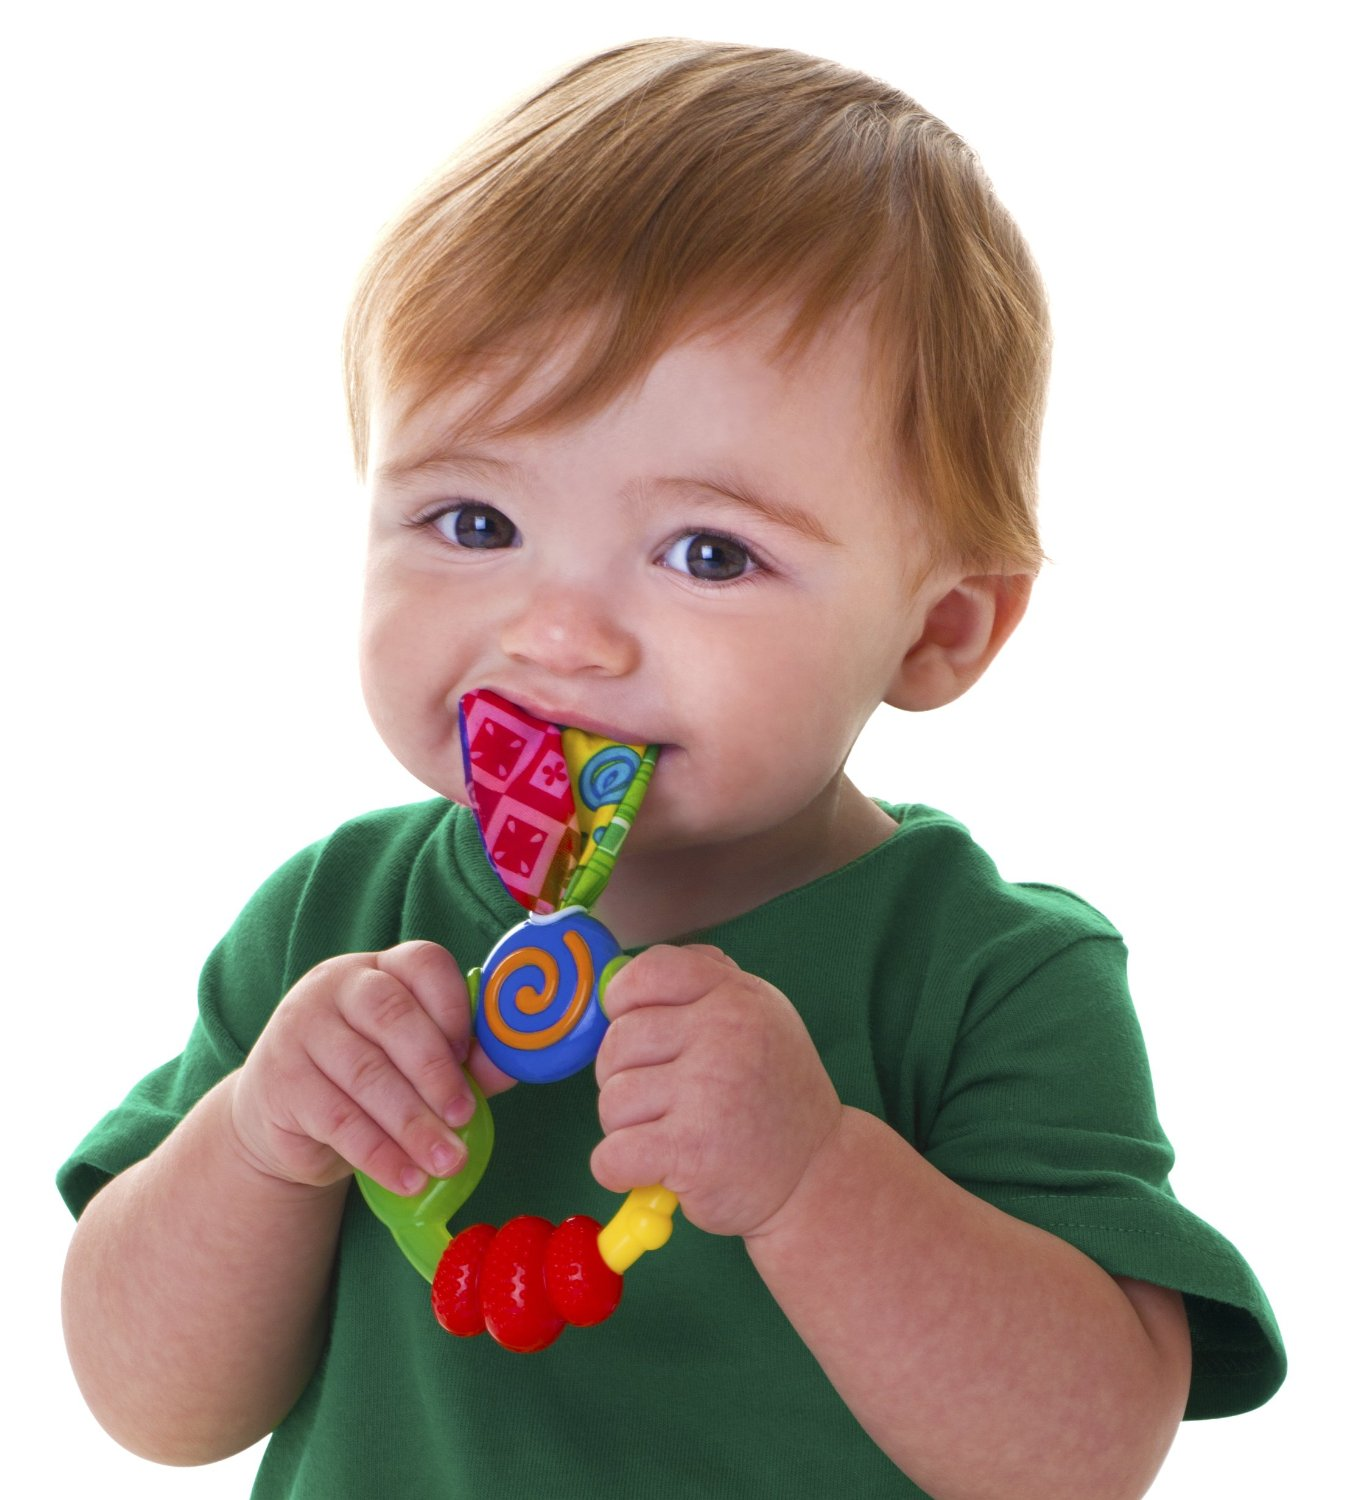 watch diy ring rings a teething youtube projects chew choosing size